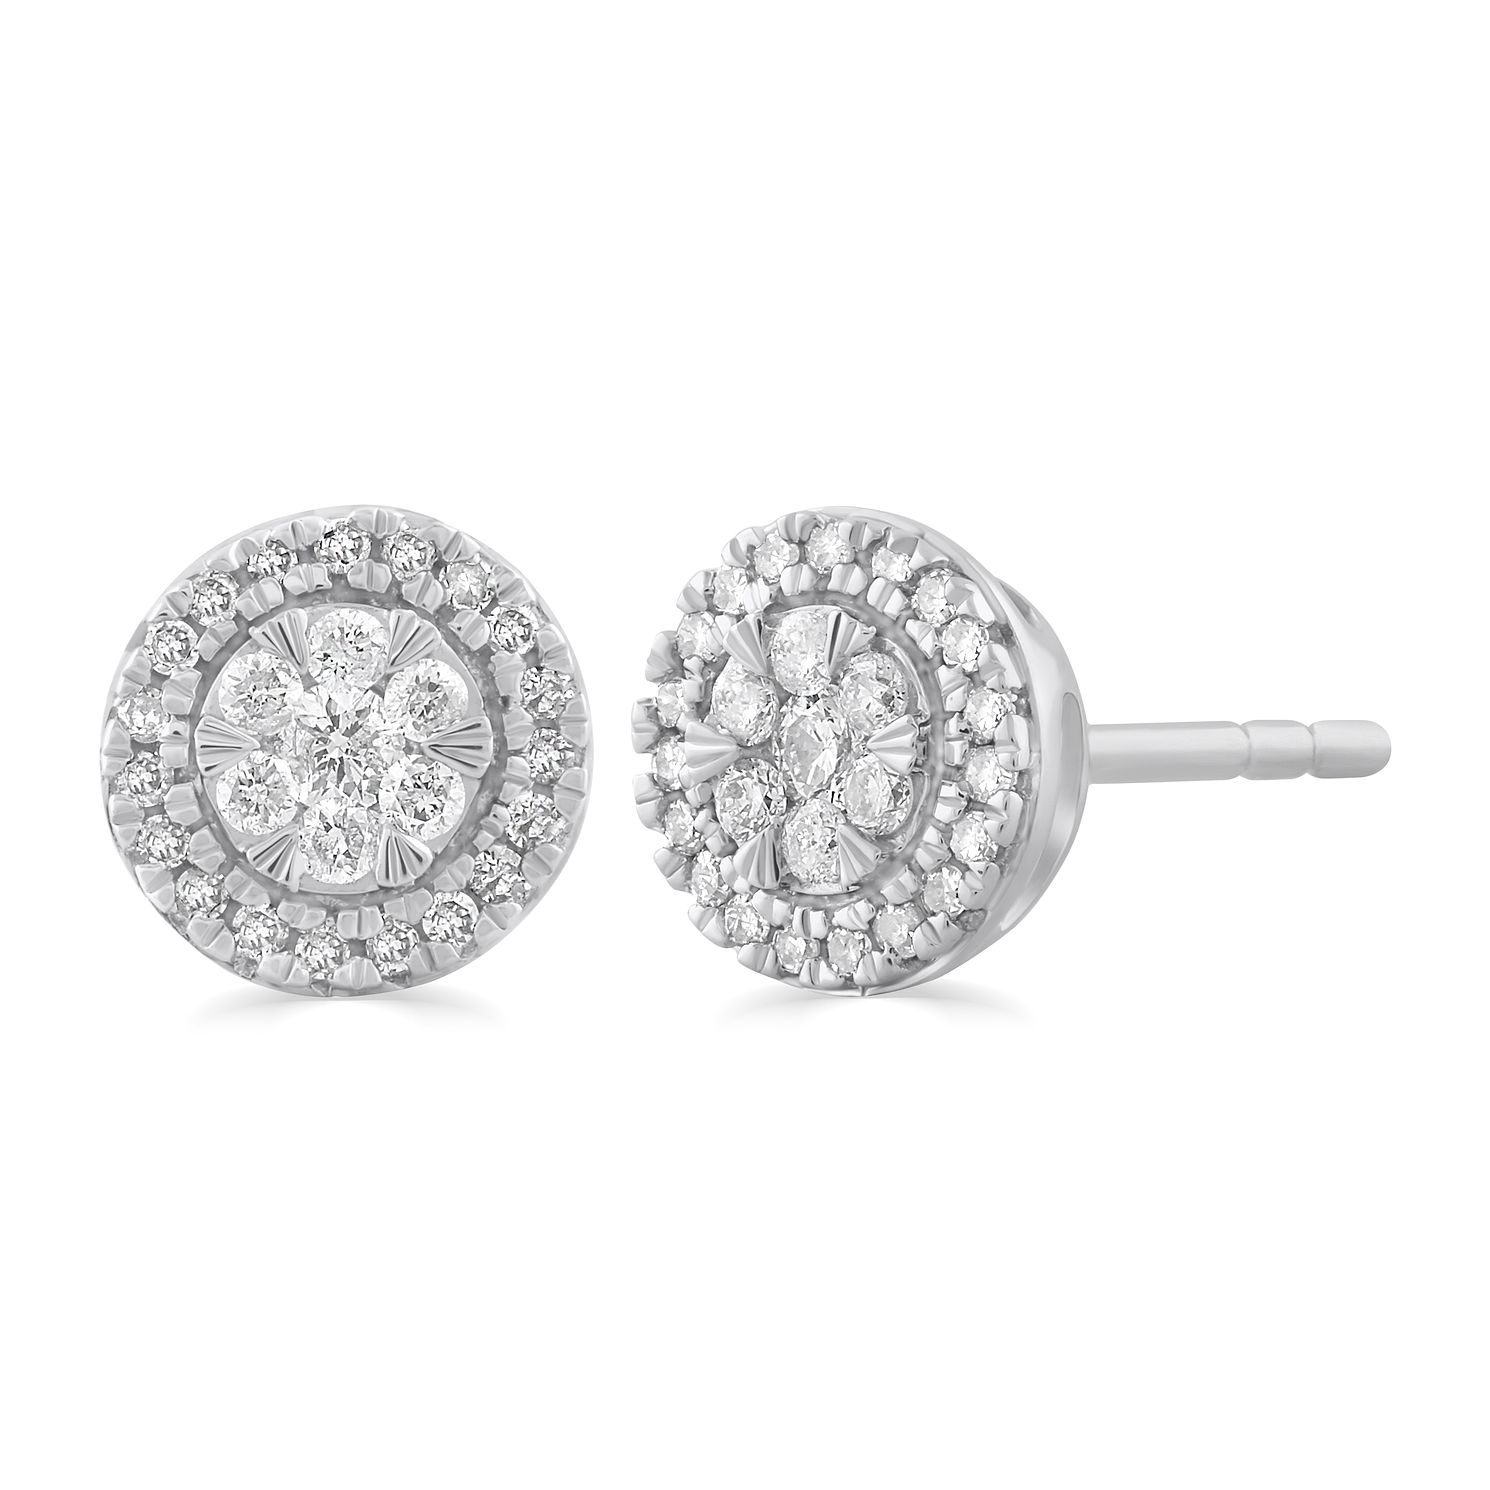 9ct White Gold 0.20ct Total Diamond Round Halo Stud Earrings - Product number 5032296